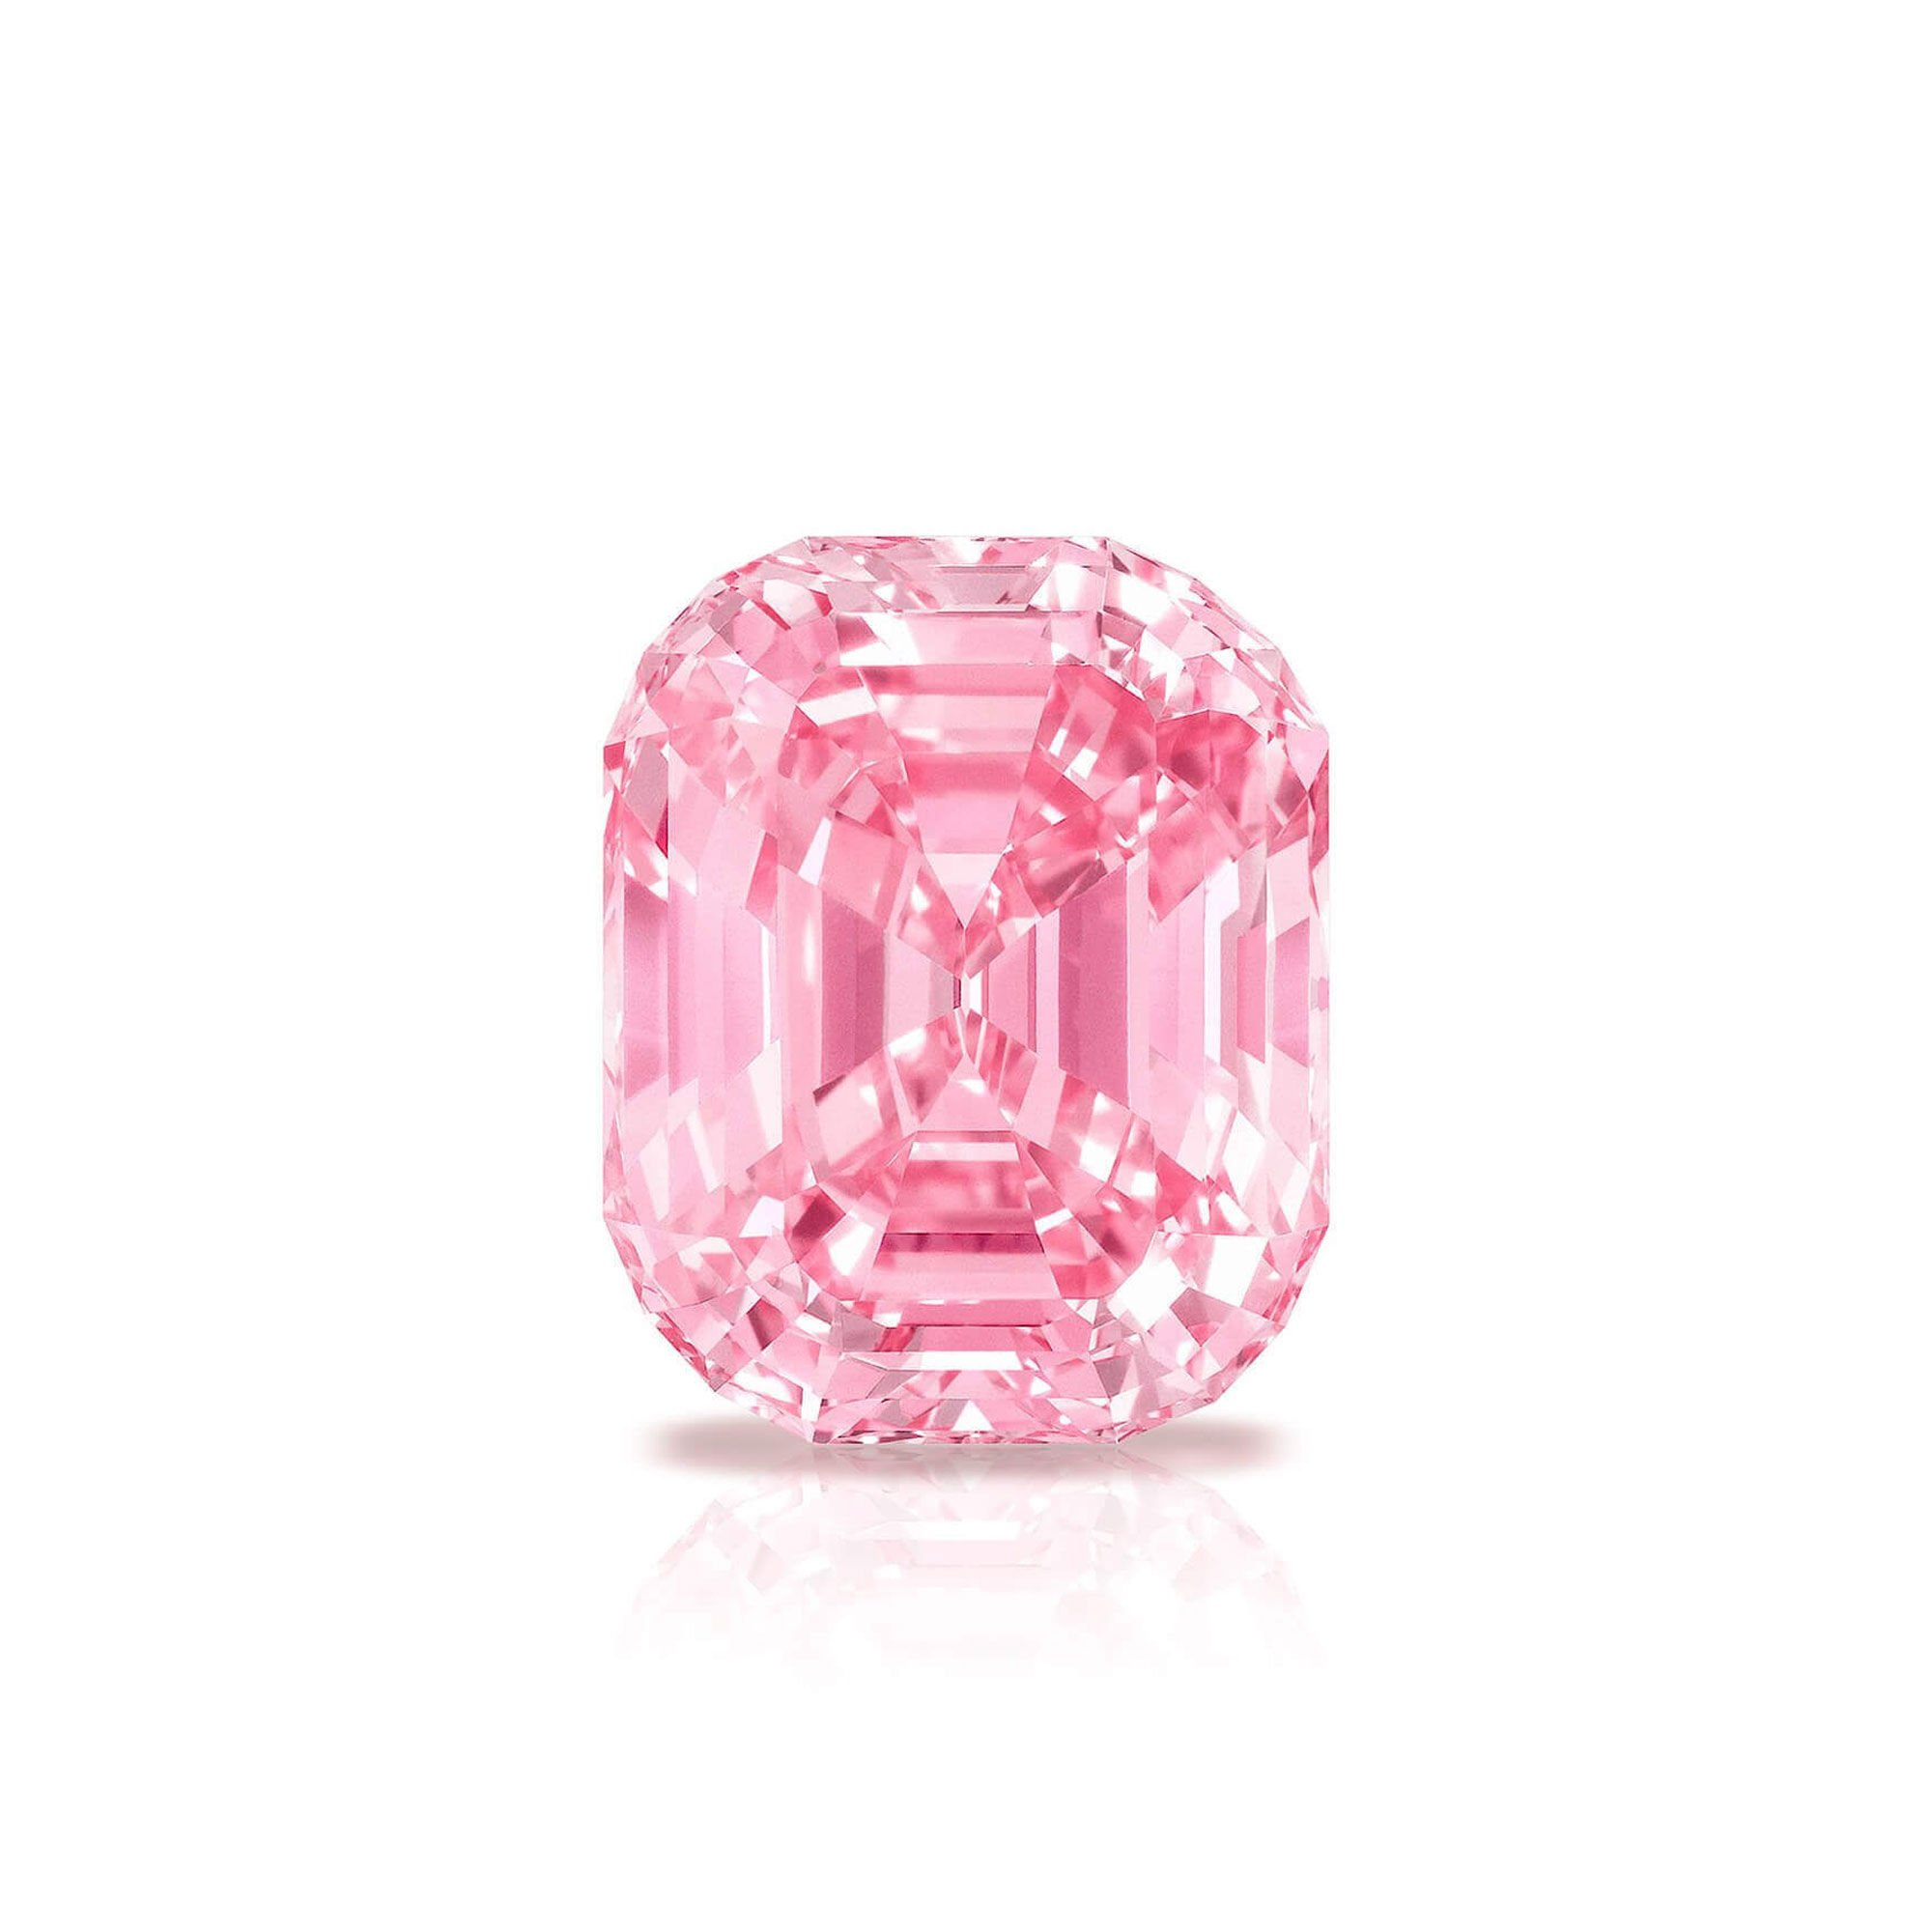 The Graff Pink famous pink diamond